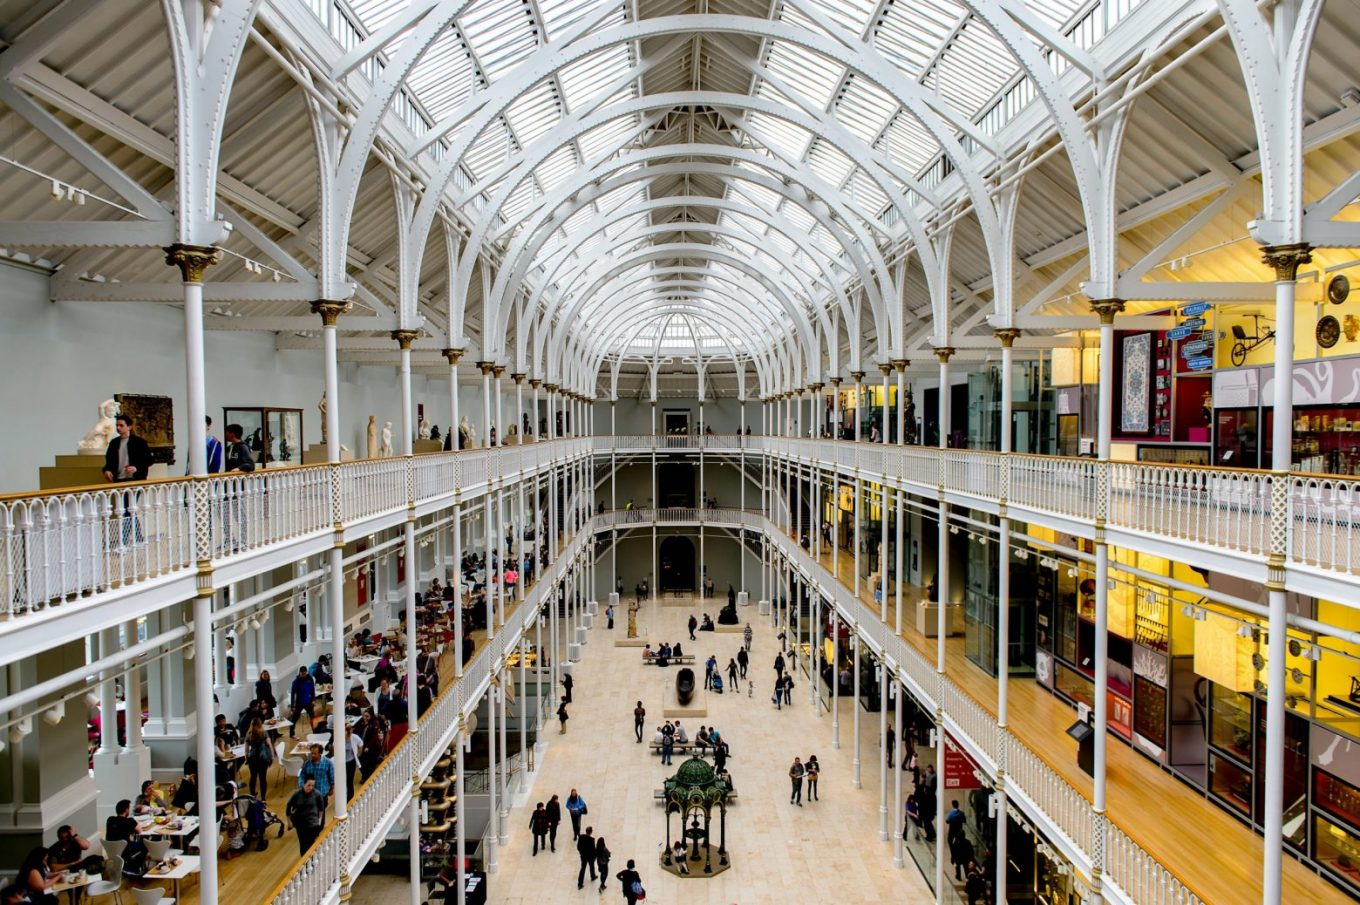 The open and airy Grand Gallery of the National Museum of Scotland.